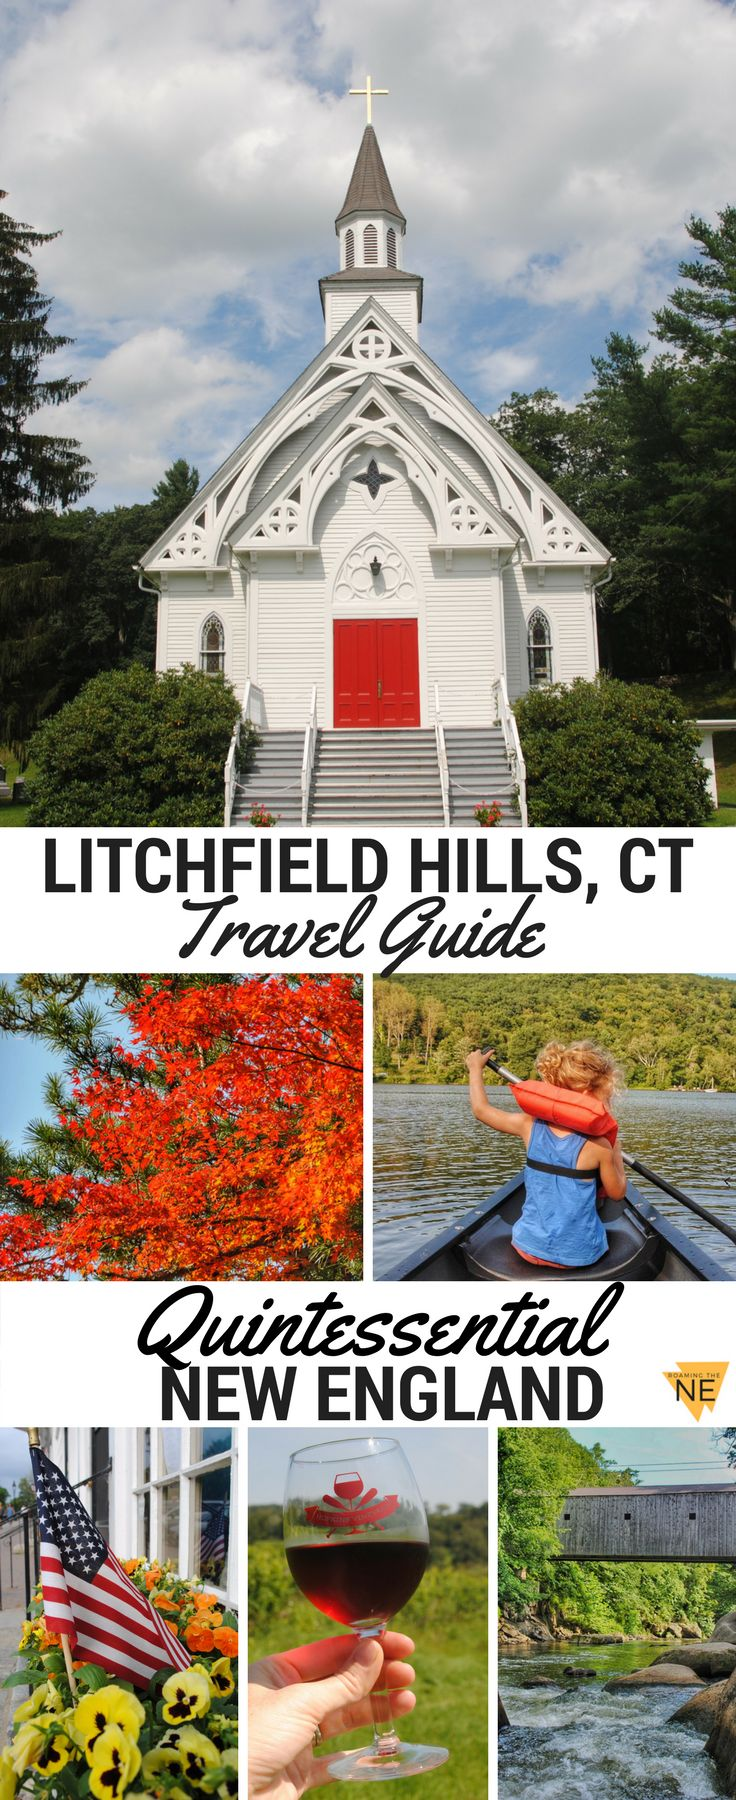 New England travel at its finest!  The Litchfield Hills in Northwest CT has so much to offer: fall foliage, a wine tour, hiking, waterfalls, and (of course!) covered bridges. Here you'll find a travel guide complete with where to stay, where to eat, and w